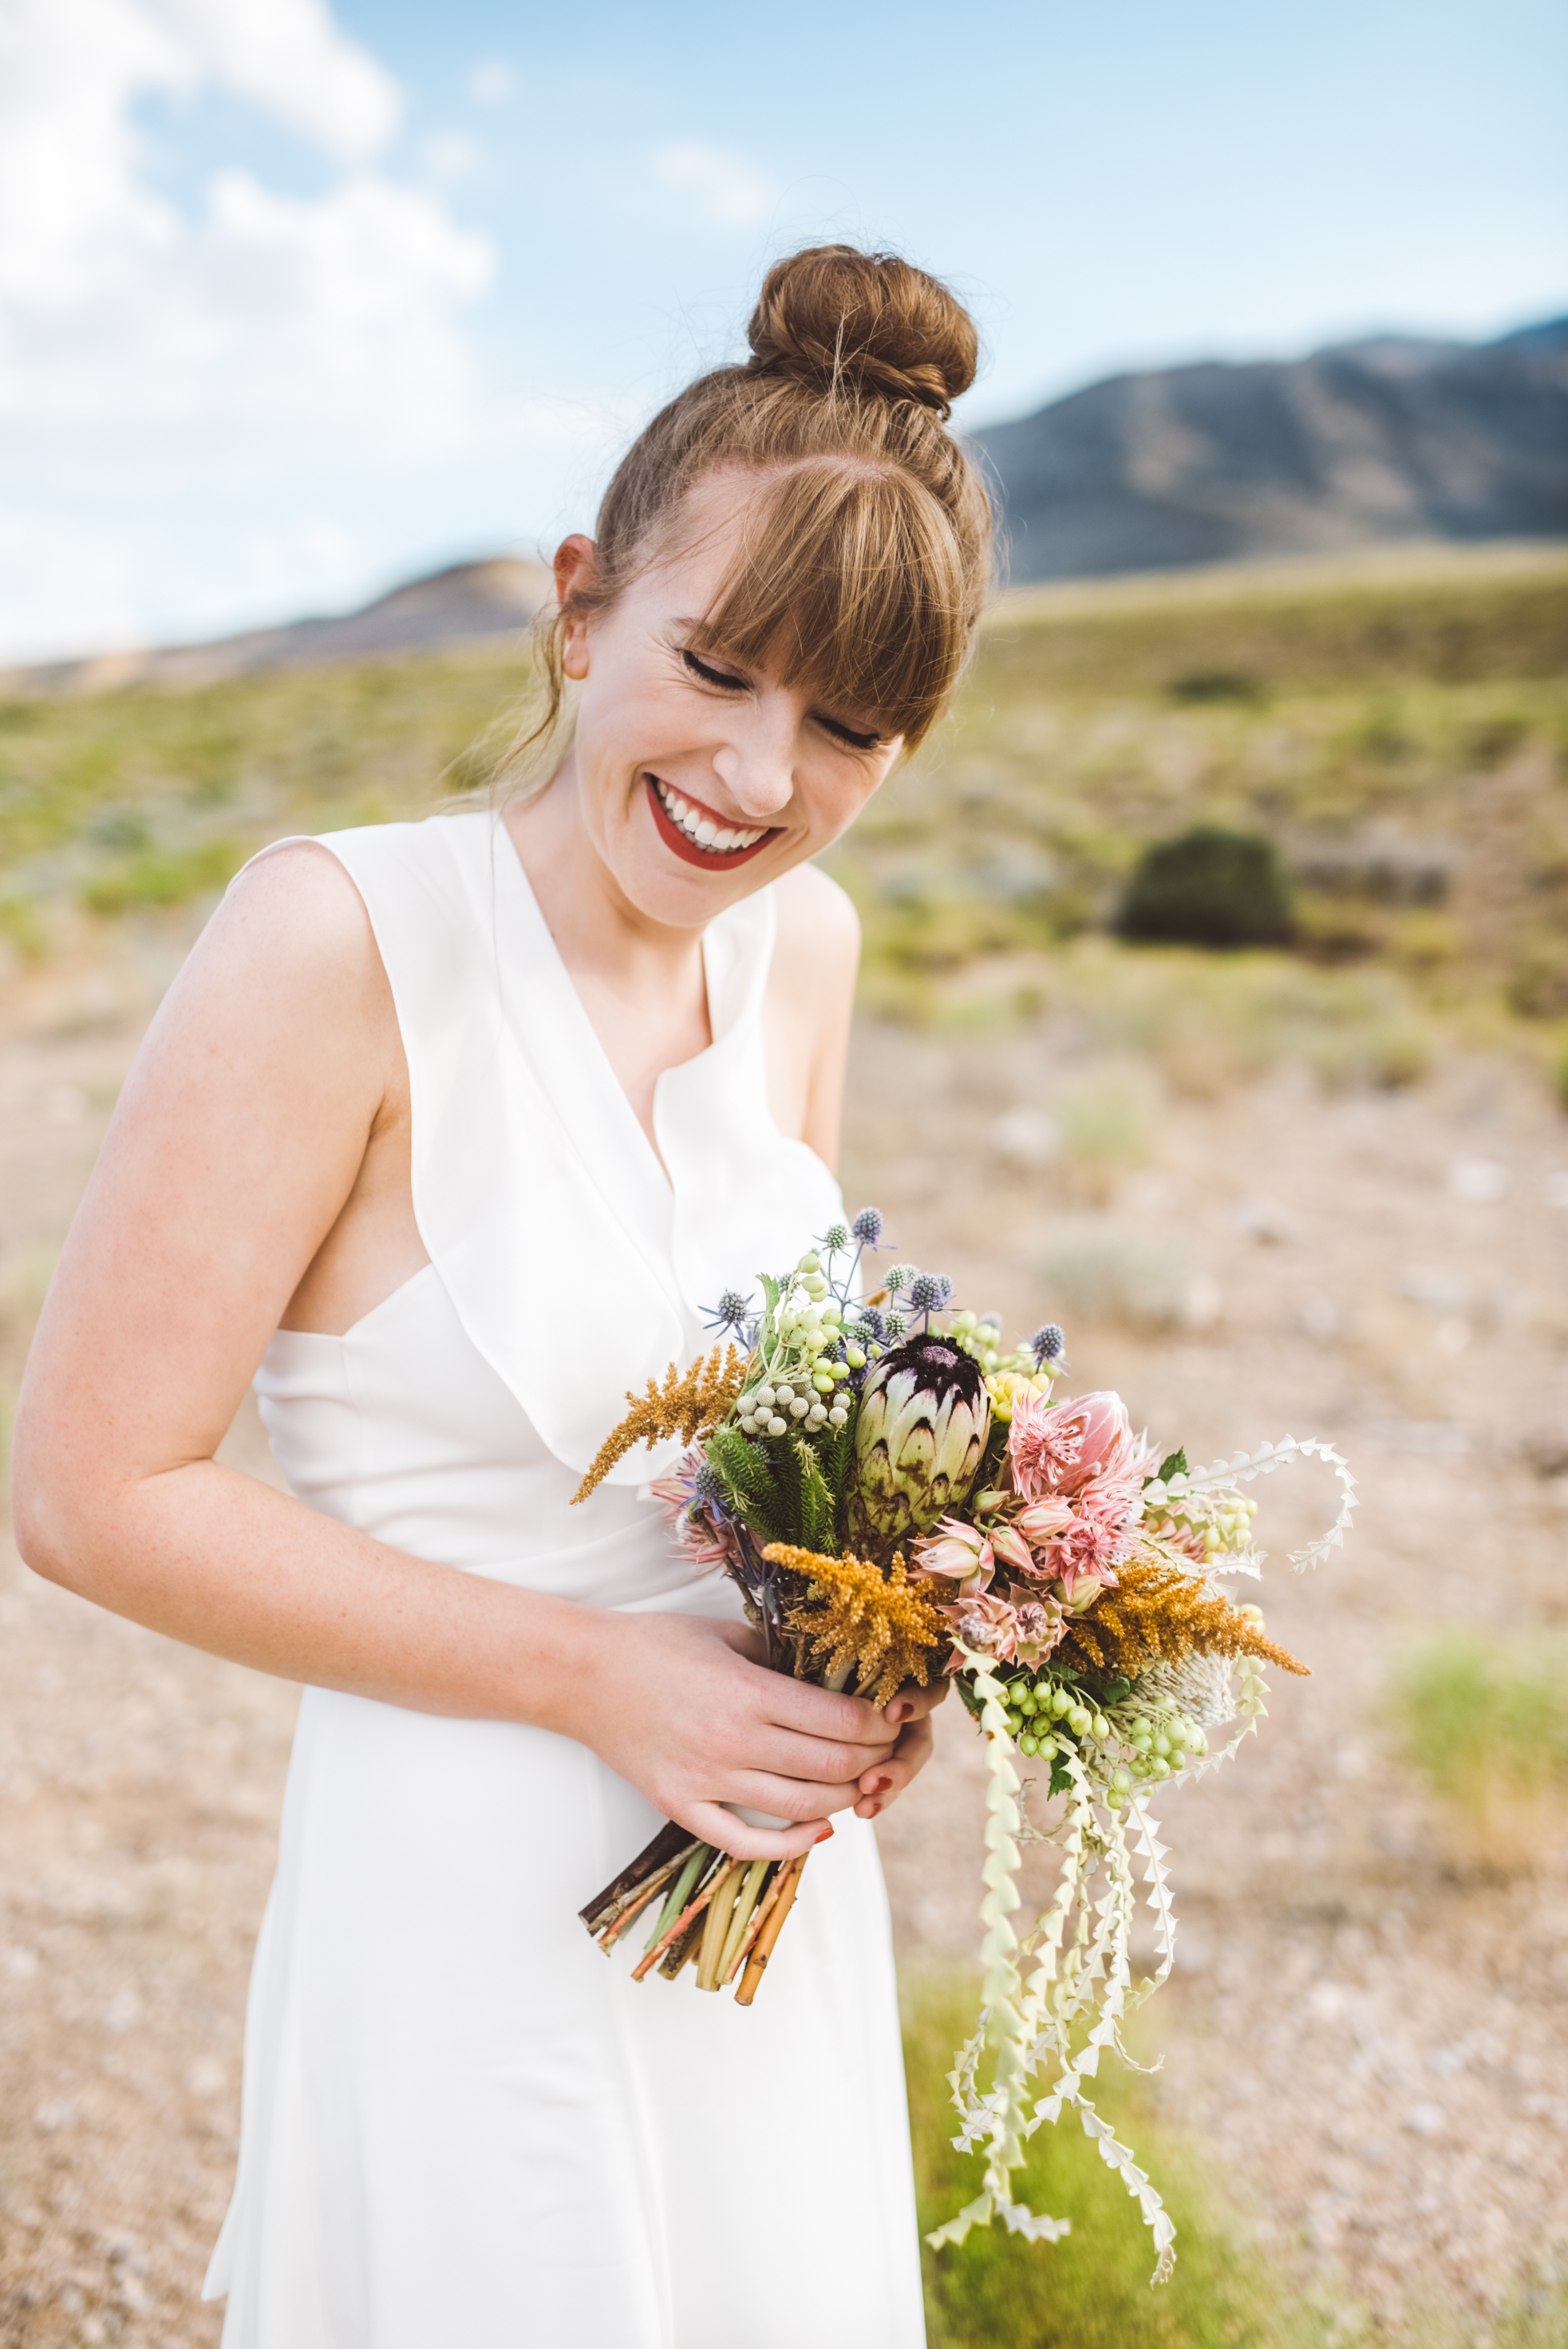 FLora Pop Desert Ceremony Red Rock Las Vegas Photography by Ashley Marie-10.jpg